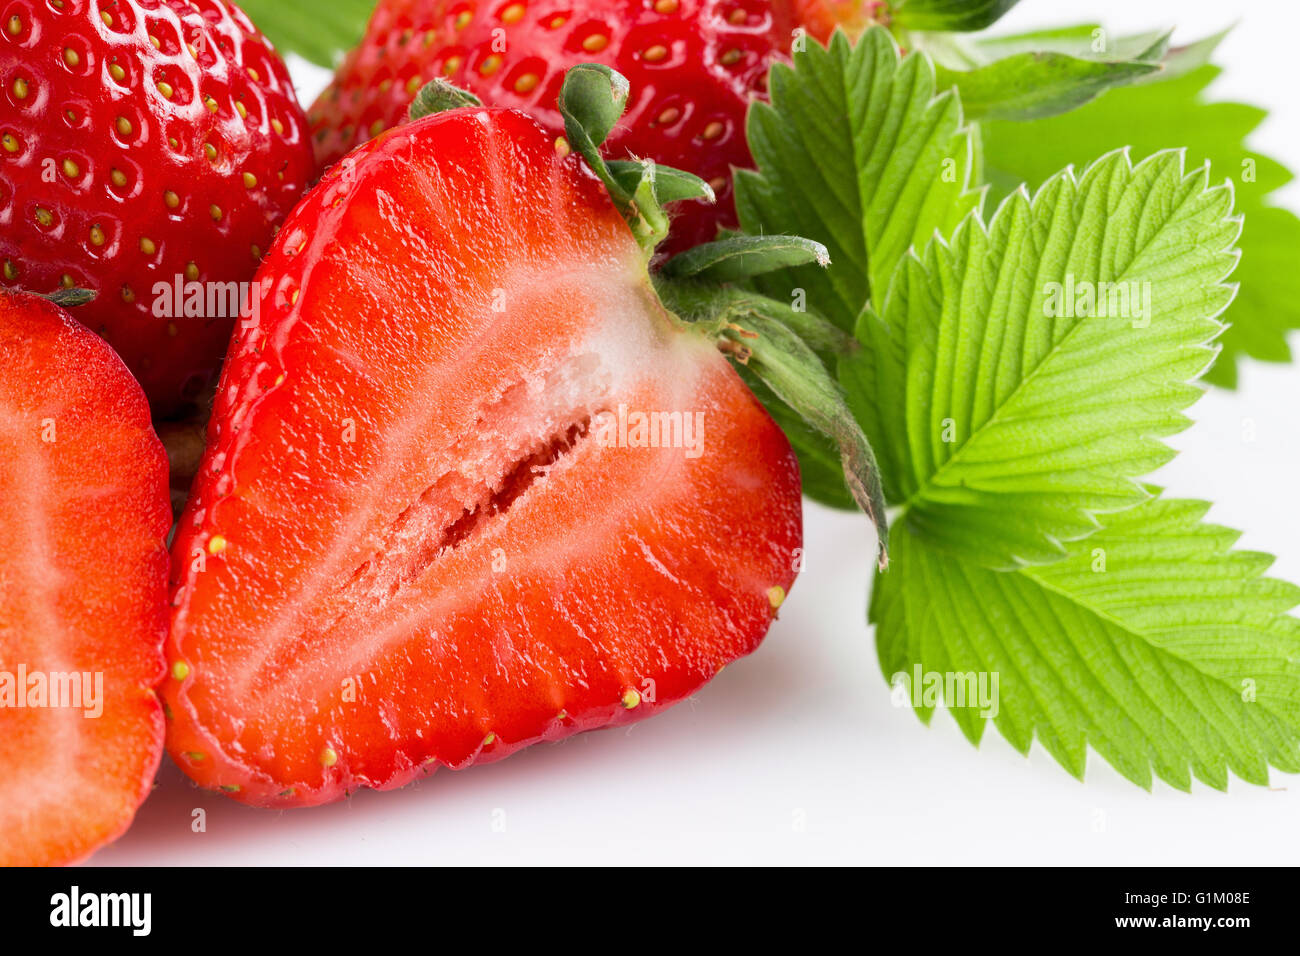 tasty strawberries isolated on the white background. - Stock Image